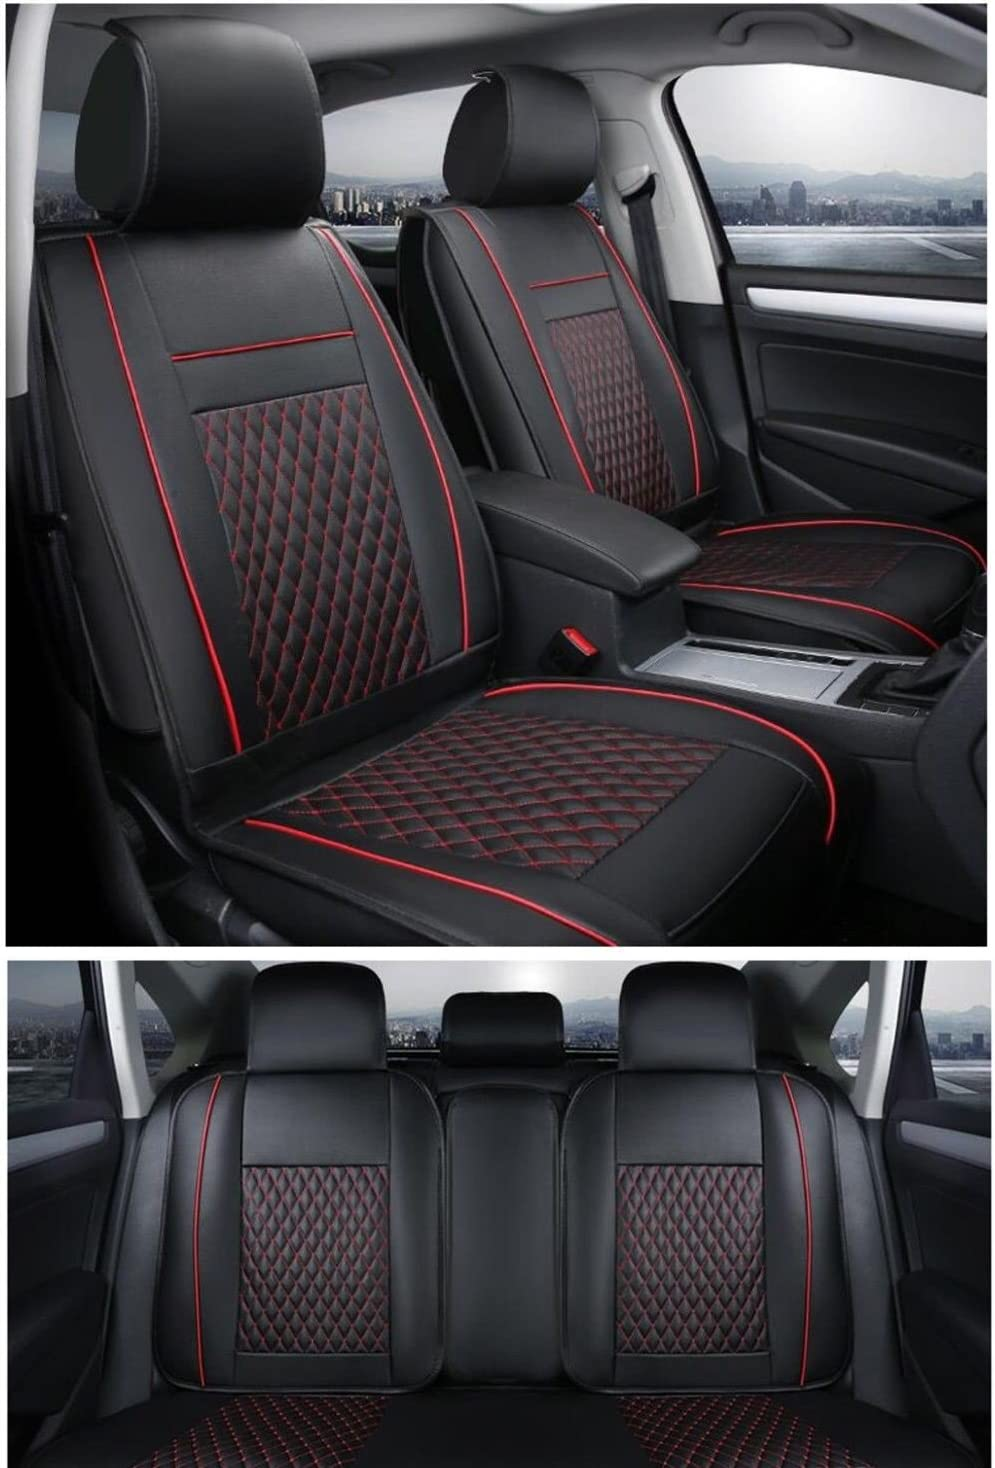 flexzon Universal Deluxe Quality Black PU Leather Full Set Car Van Camper Seat Covers Padded